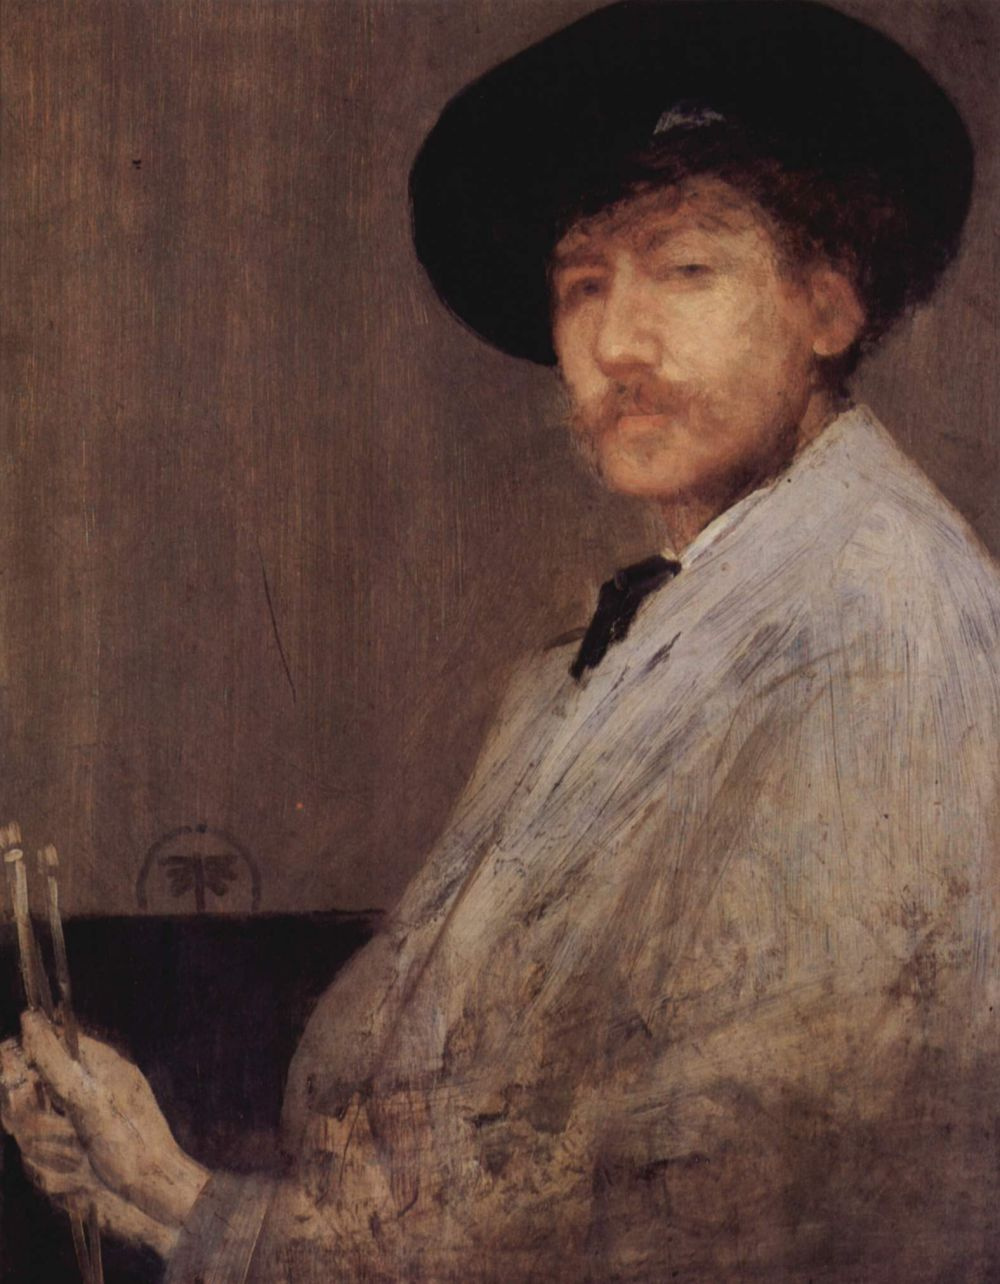 James Abbot McNeill Whistler. Composition in grey. Self portrait